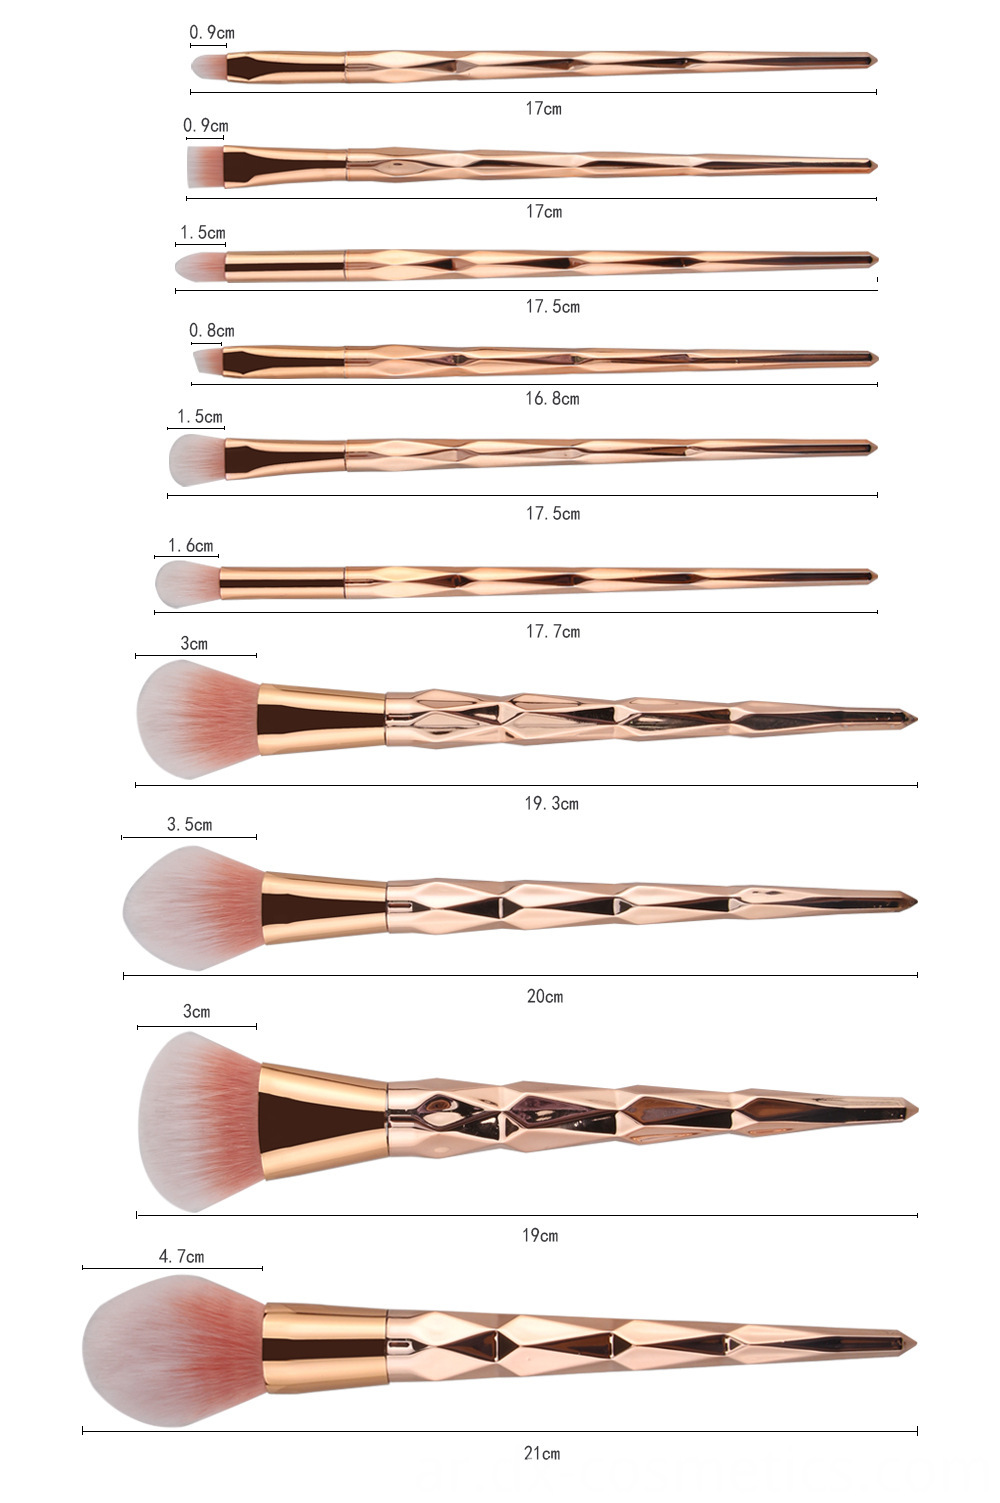 10 Pcs Diamond Rose Gold Makeup Brushes Sets 5